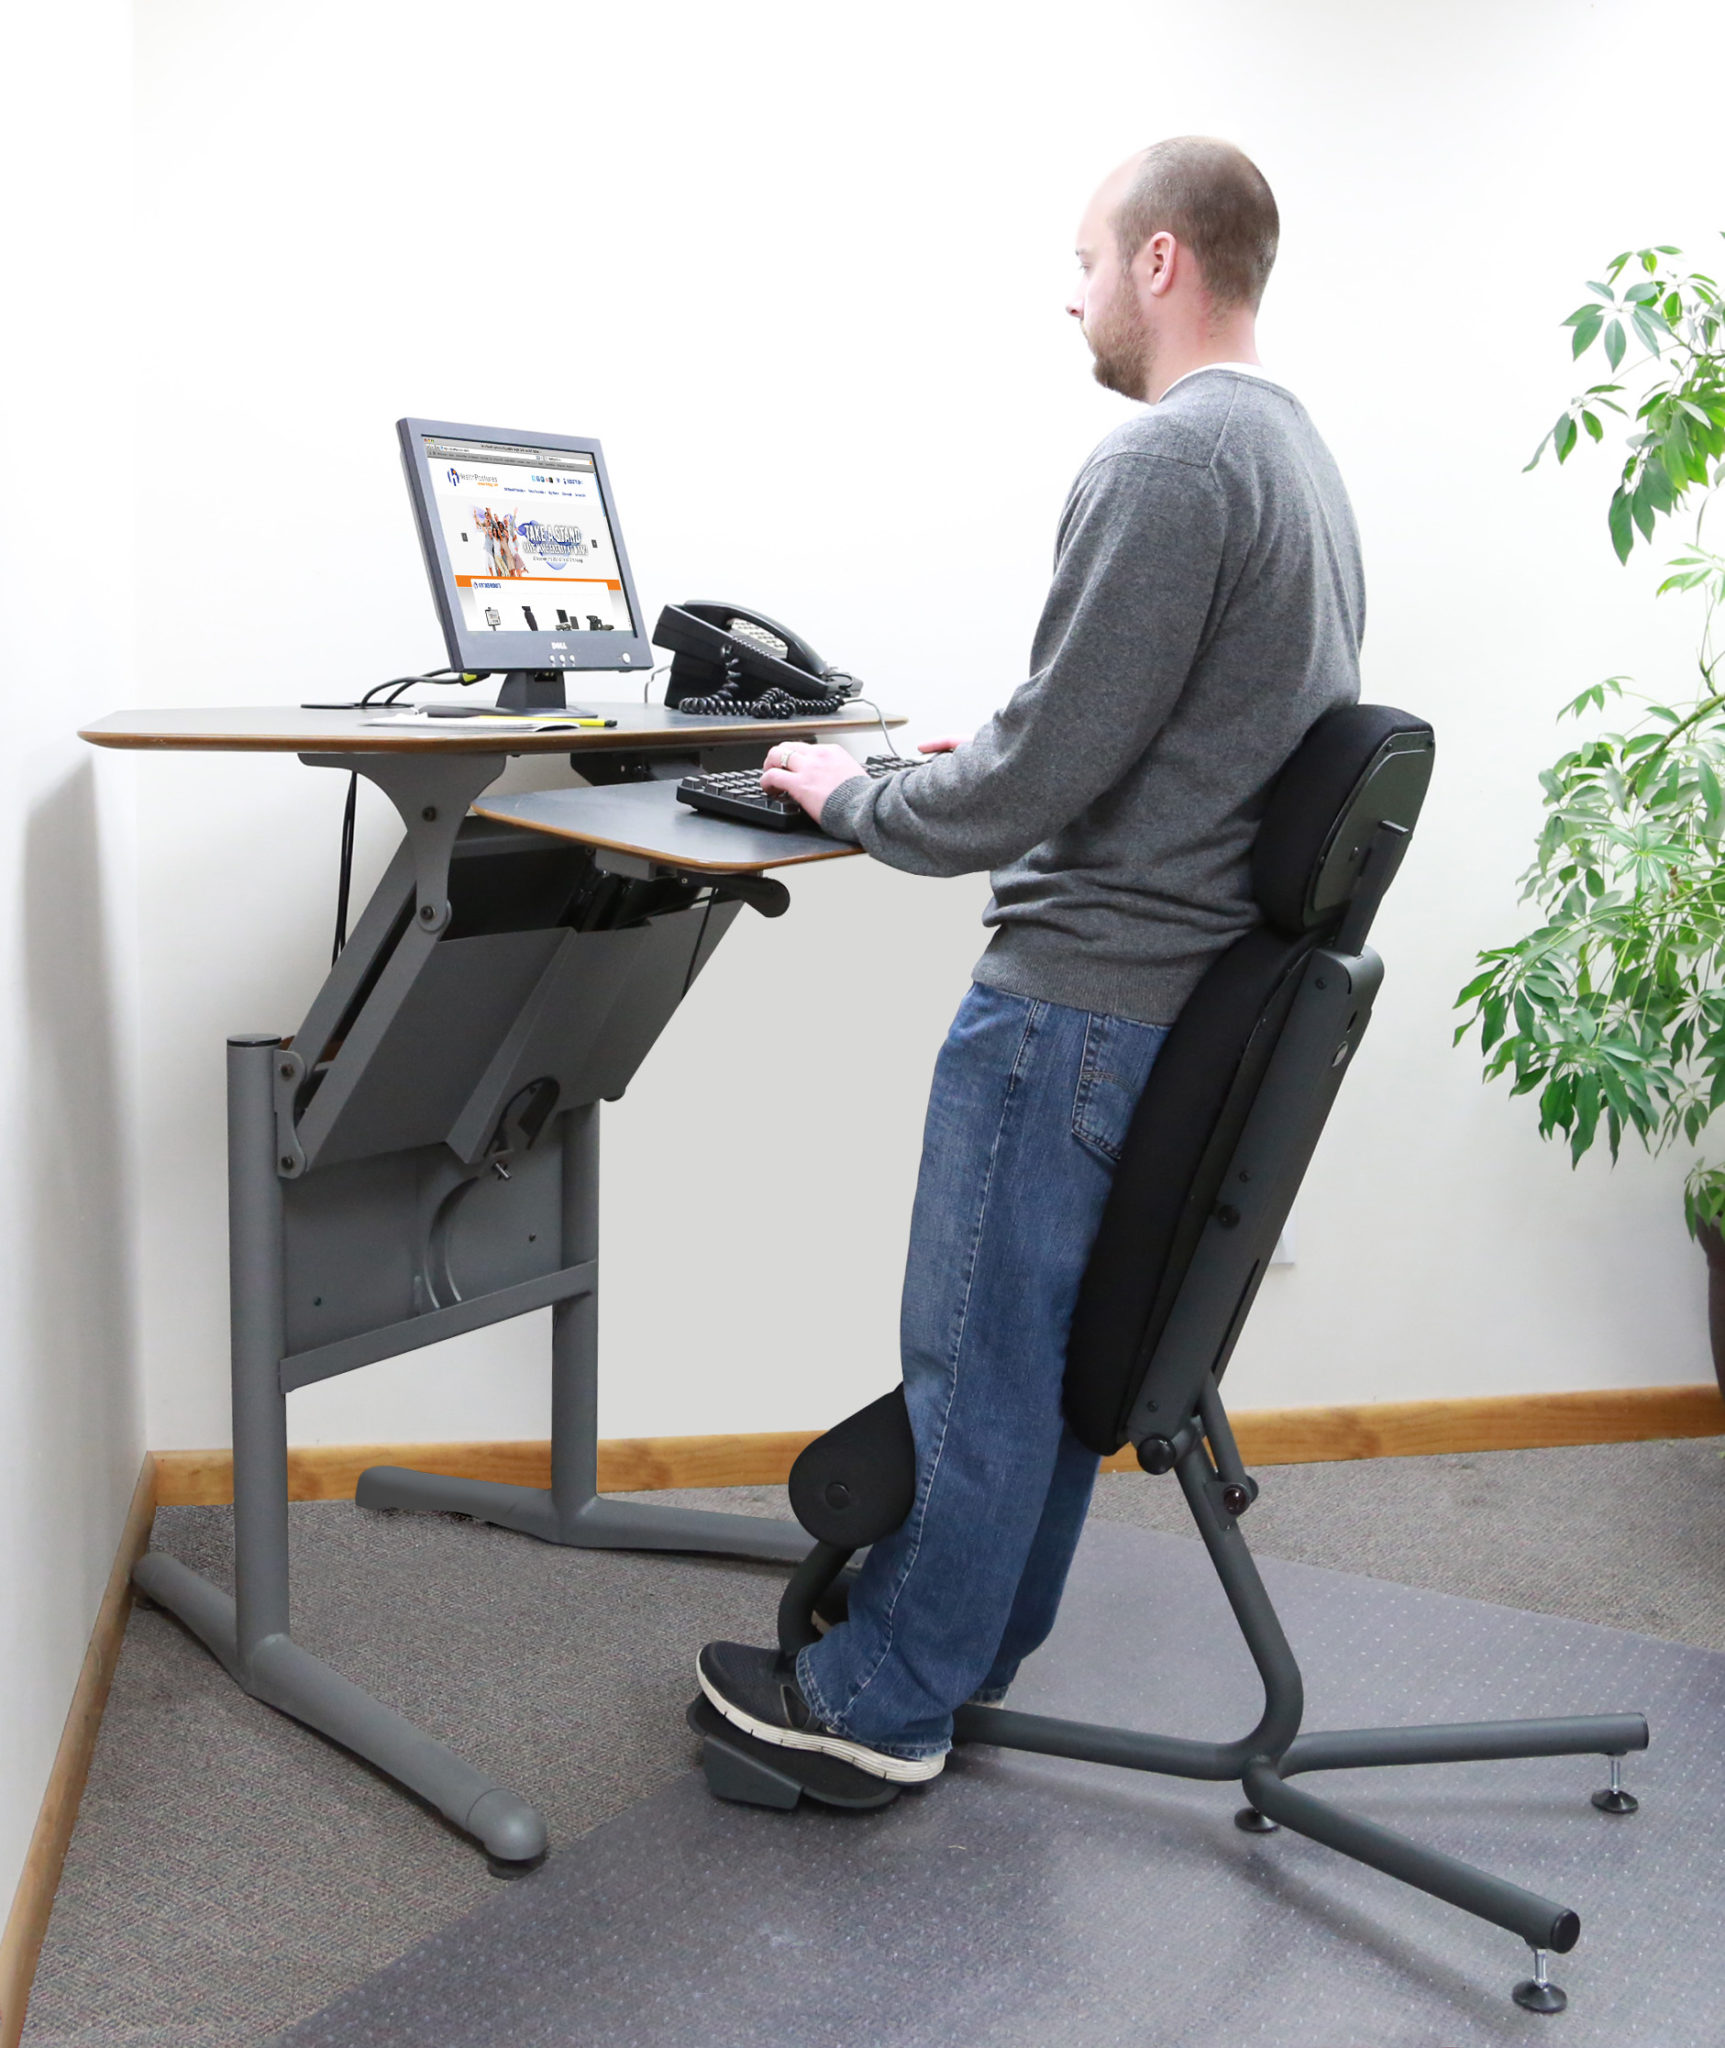 Stance Angle Chair Ergonomic Standing Chair Healthpostures